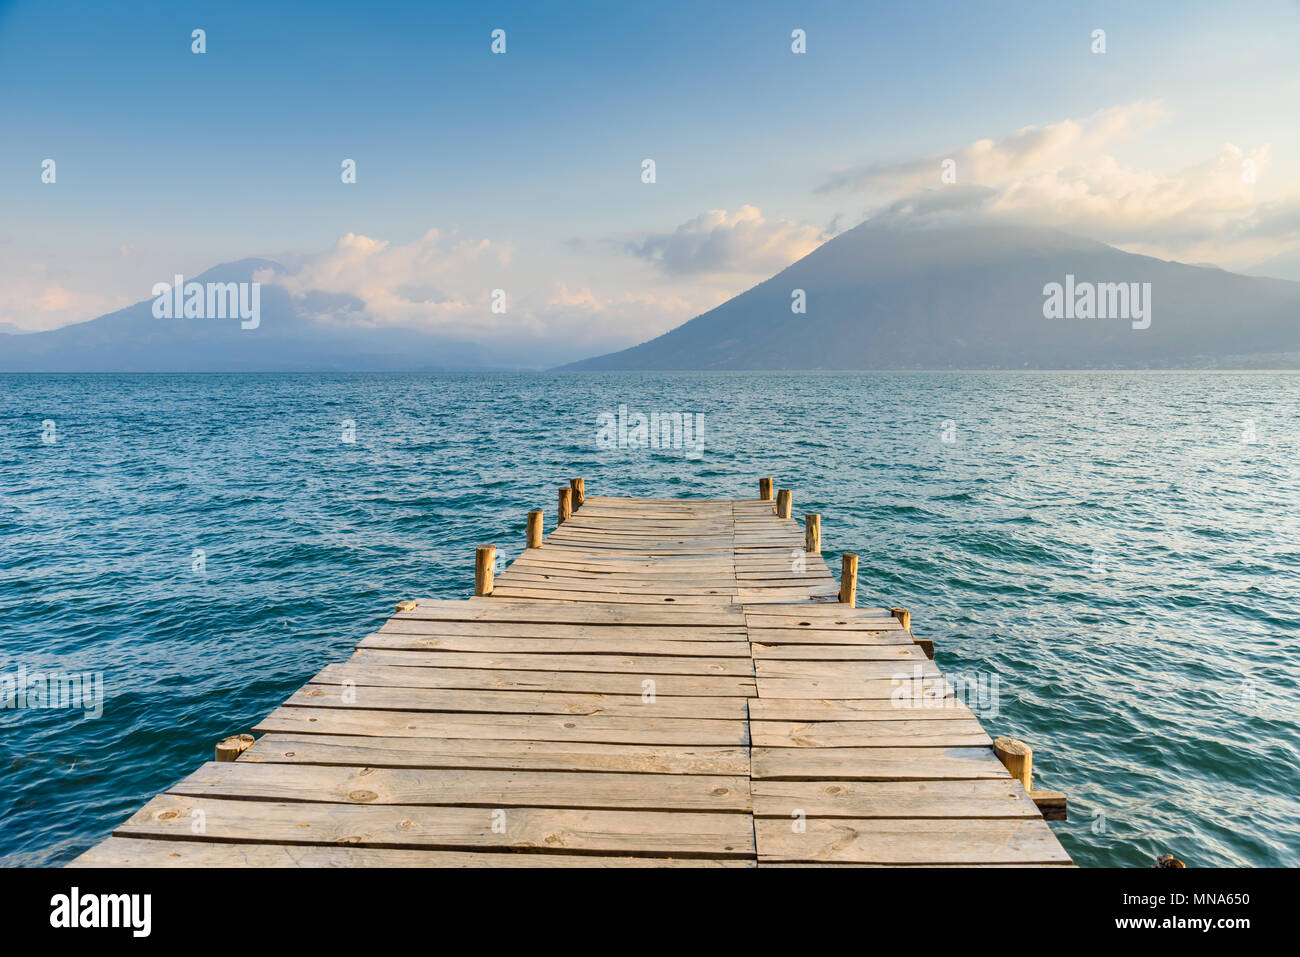 Pier at San Marcos La Laguna with beaufiful scenery of Lake Atitlan and volcanos - Guatemala - Stock Image